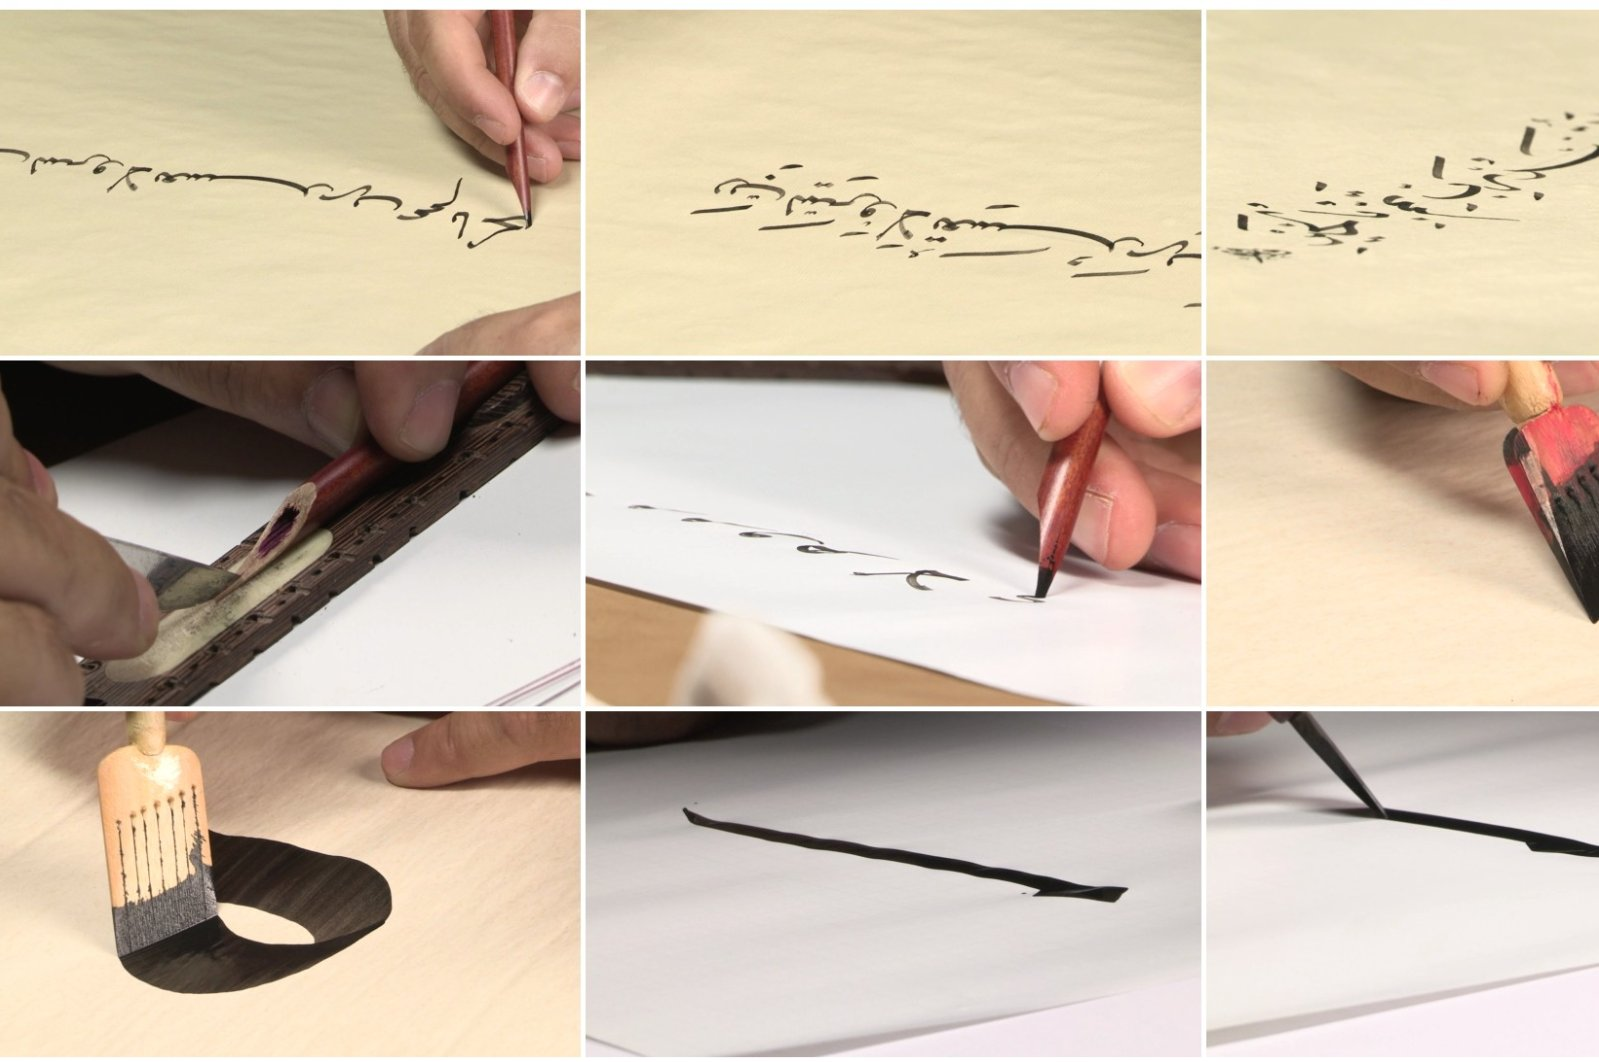 """Ali Kazma, """"Calligraphy"""" (from the series Resistance), 2013, video. (Courtesy of Arter)"""